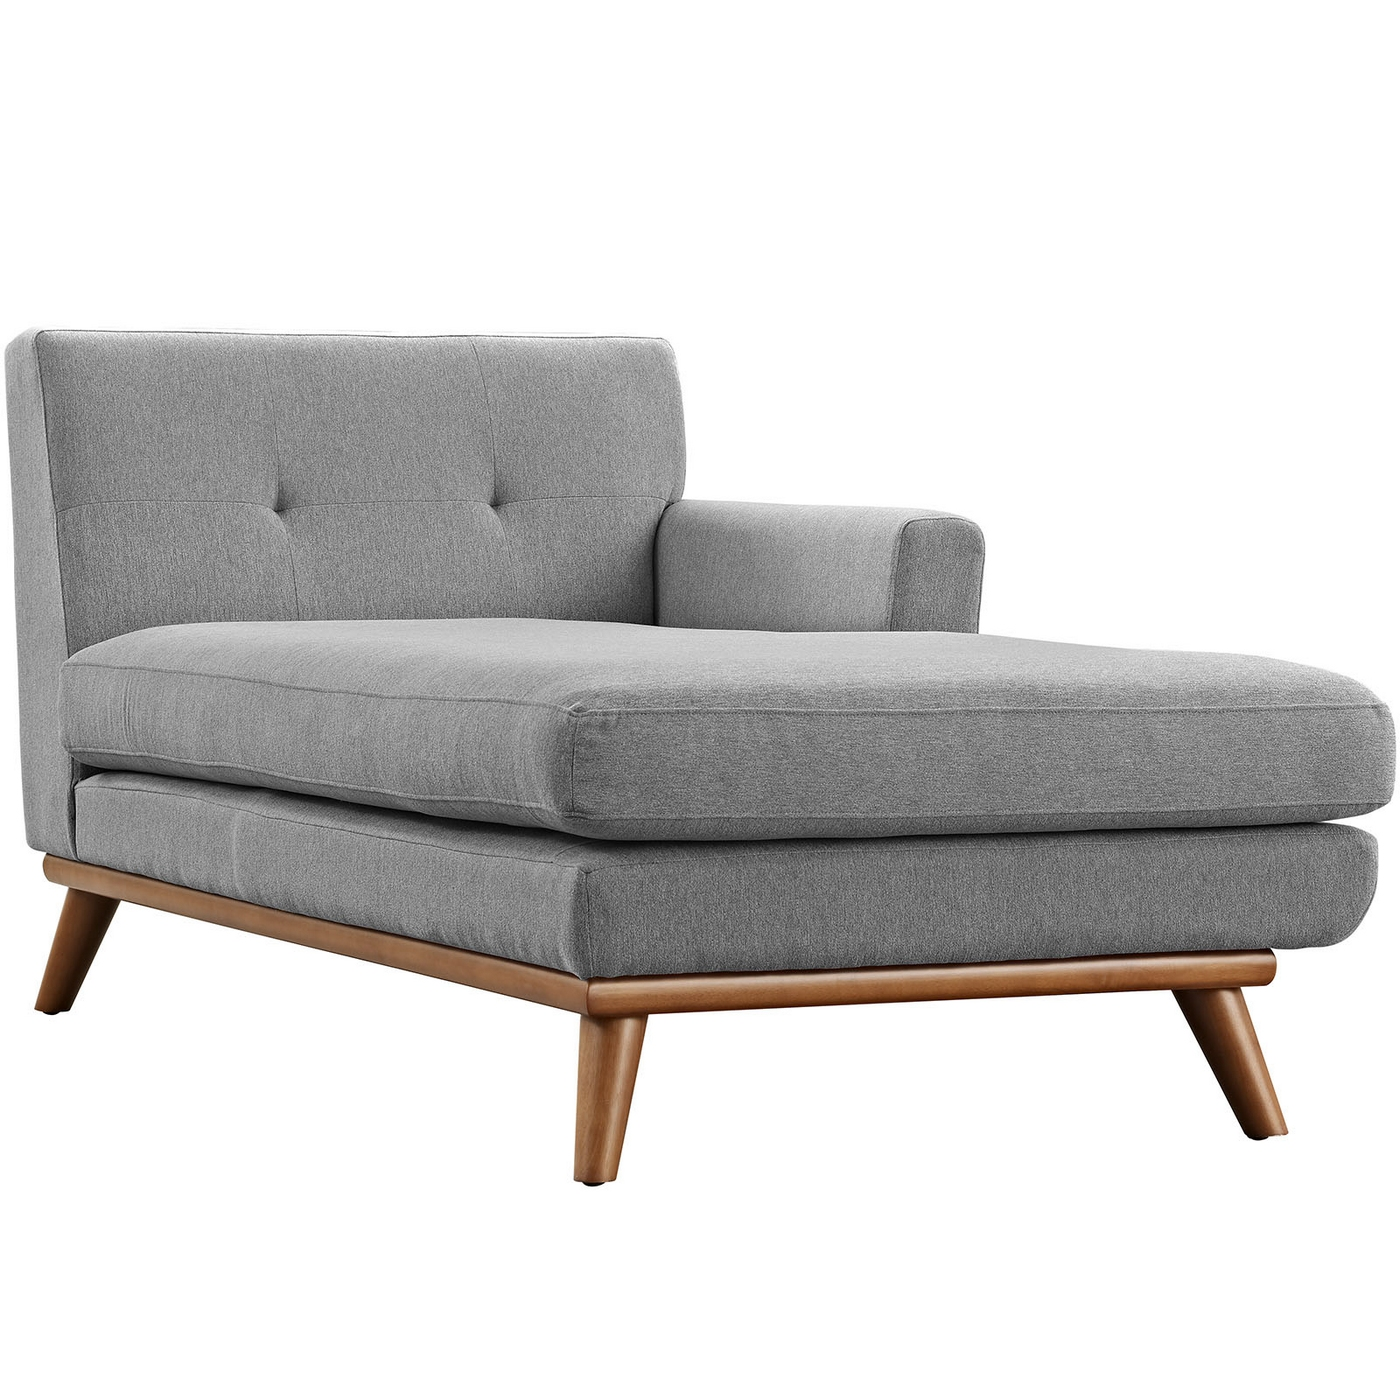 Engage modern button tufted upholstered right arm chaise for Button tufted chaise settee green